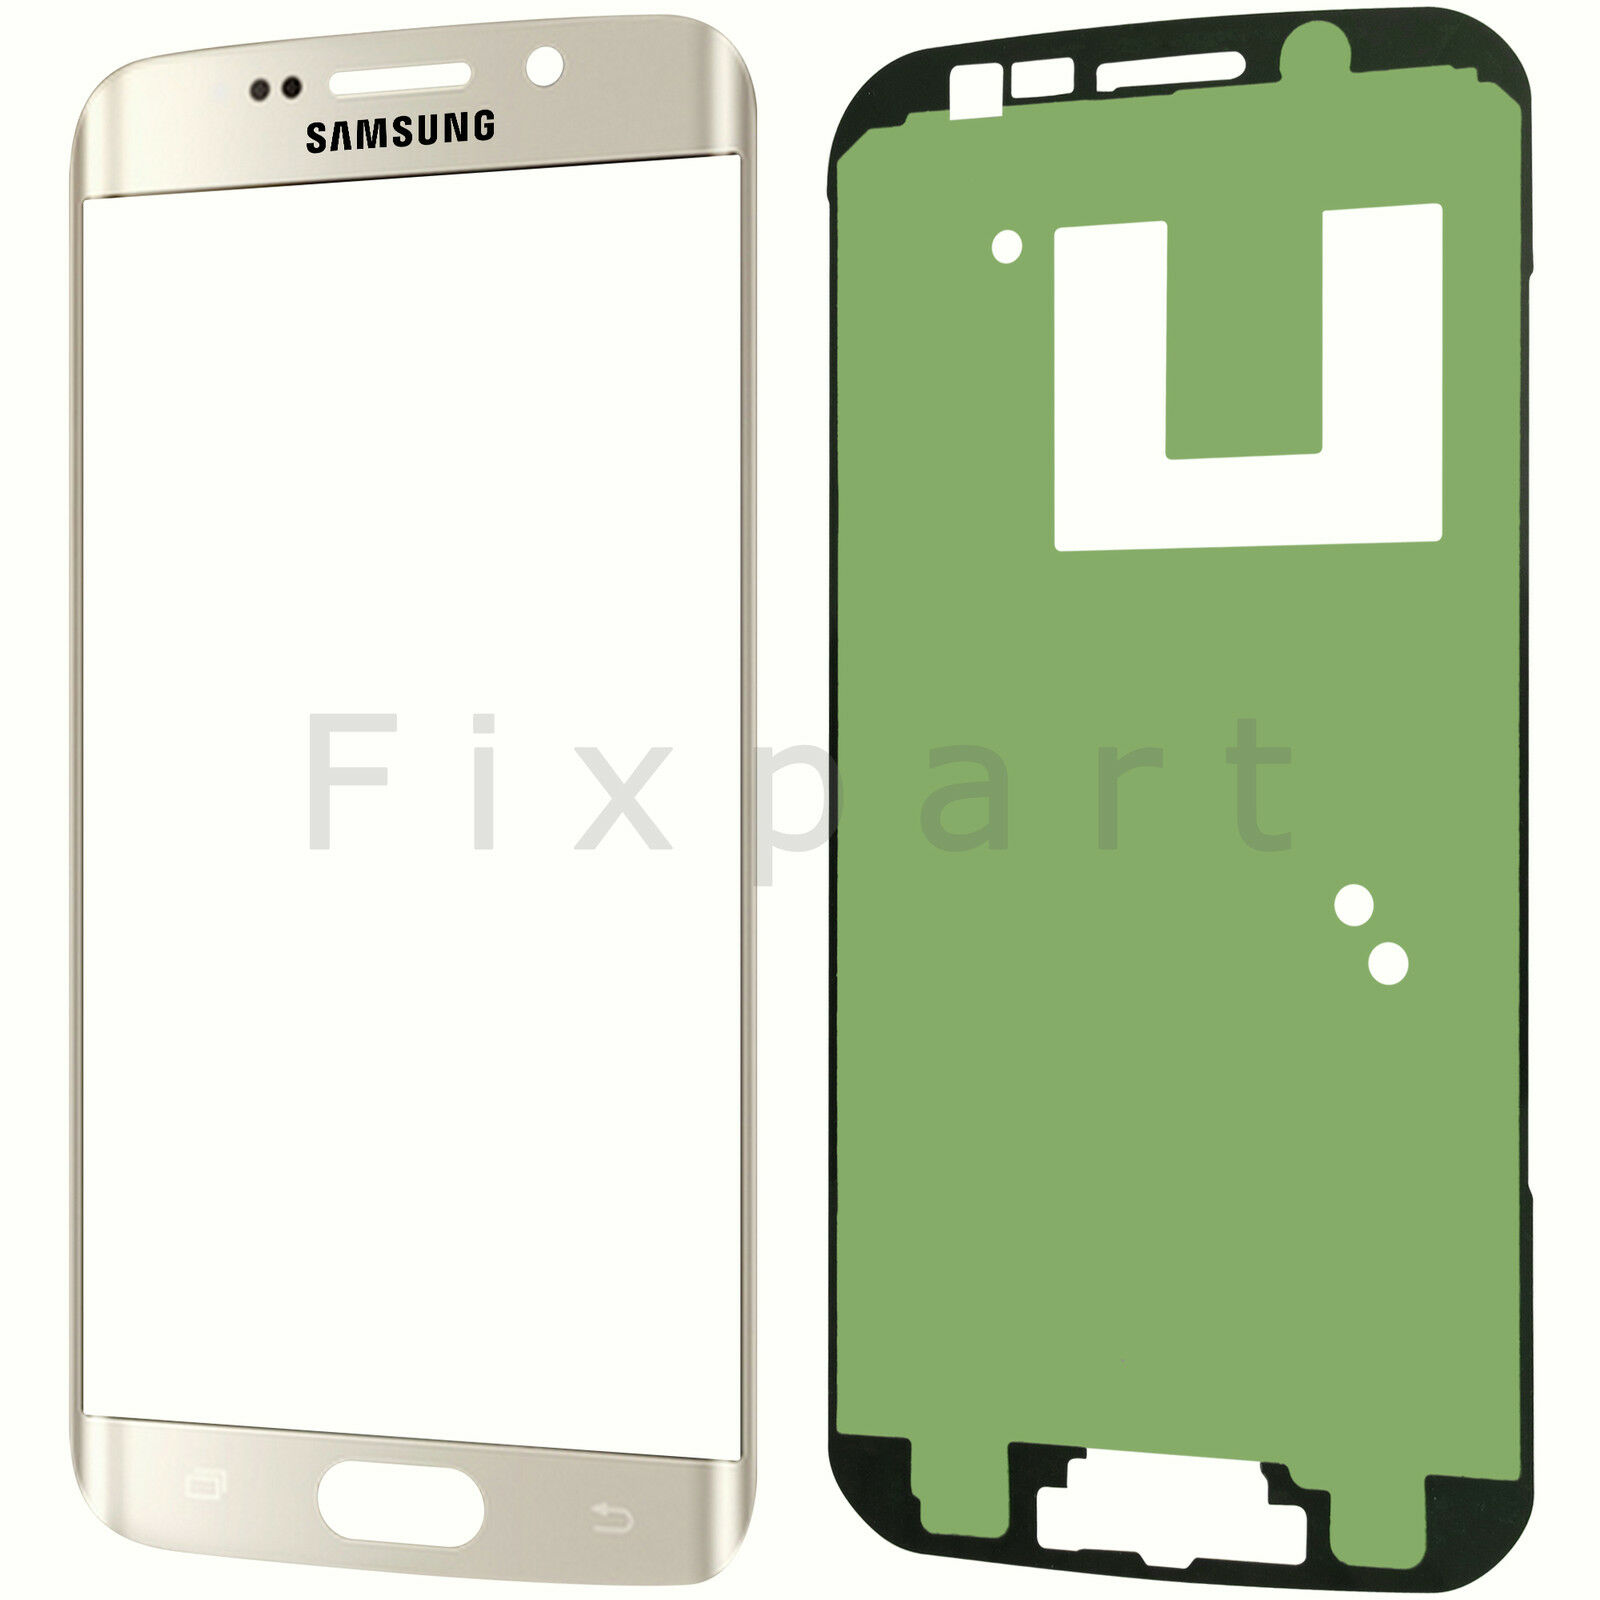 Samsung galaxy s6 edge plus front display glas scheibe for Glas klebefolie